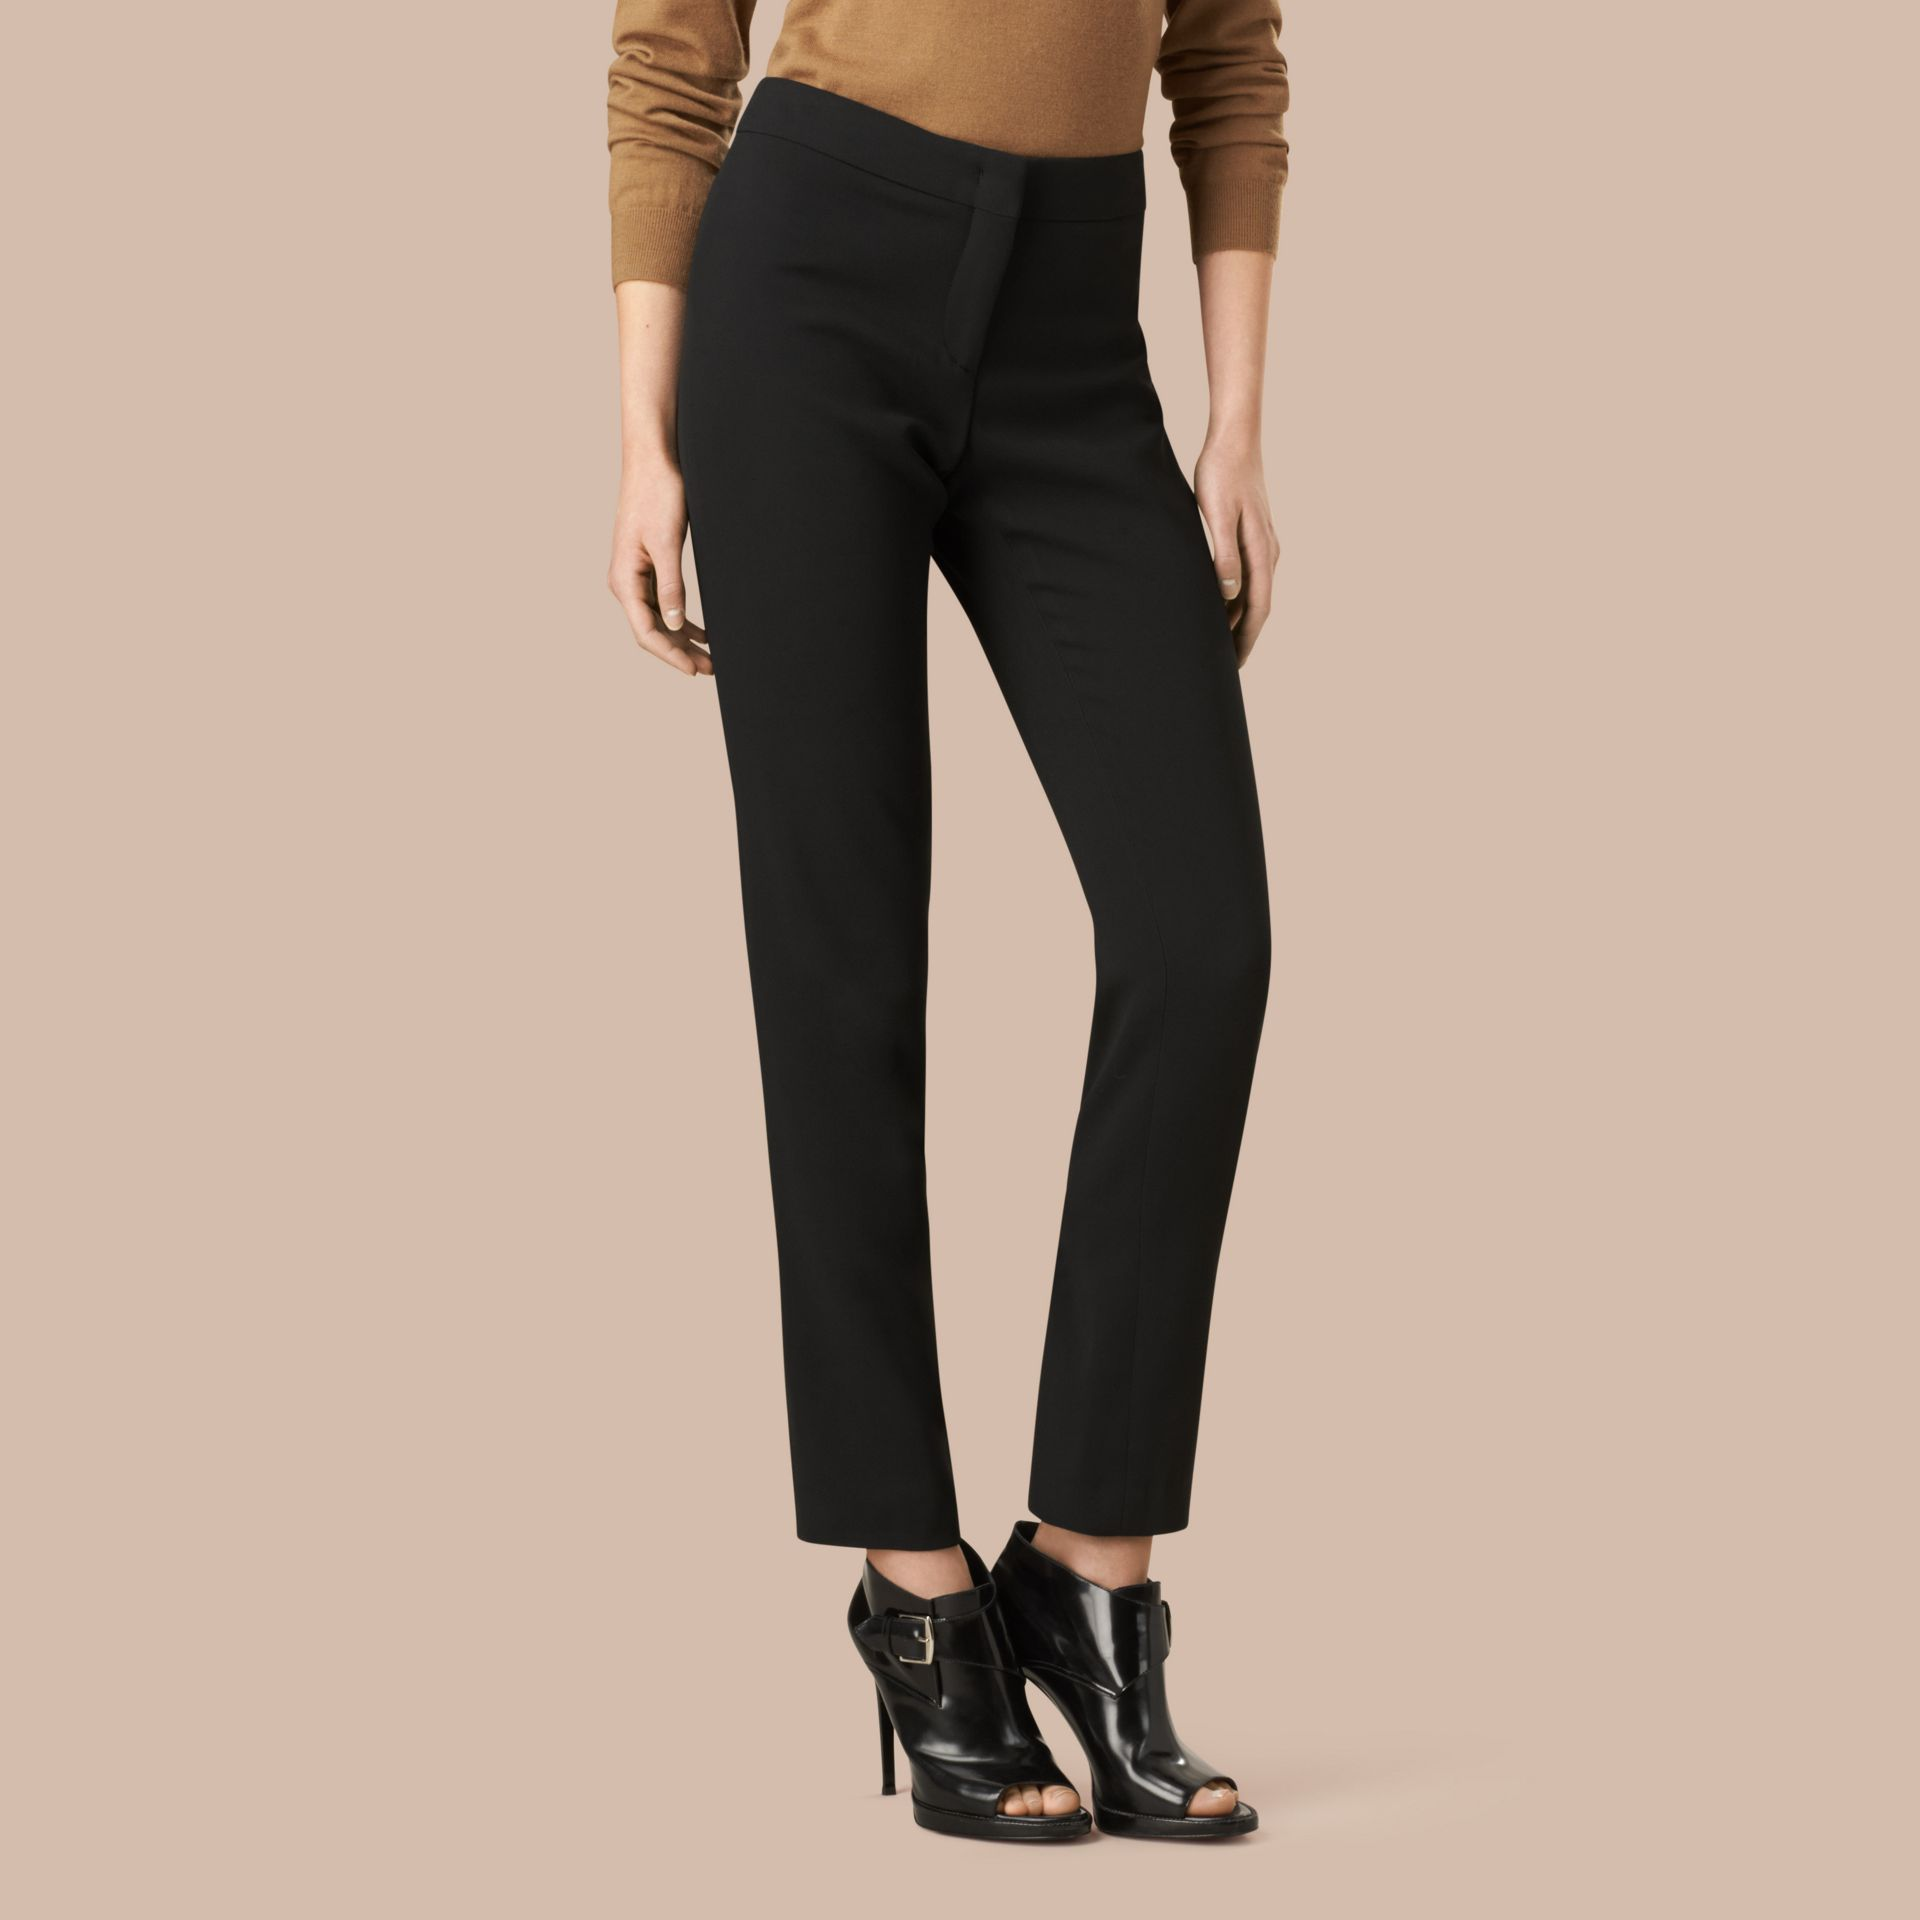 Black Slim Fit Faille Trousers - gallery image 2